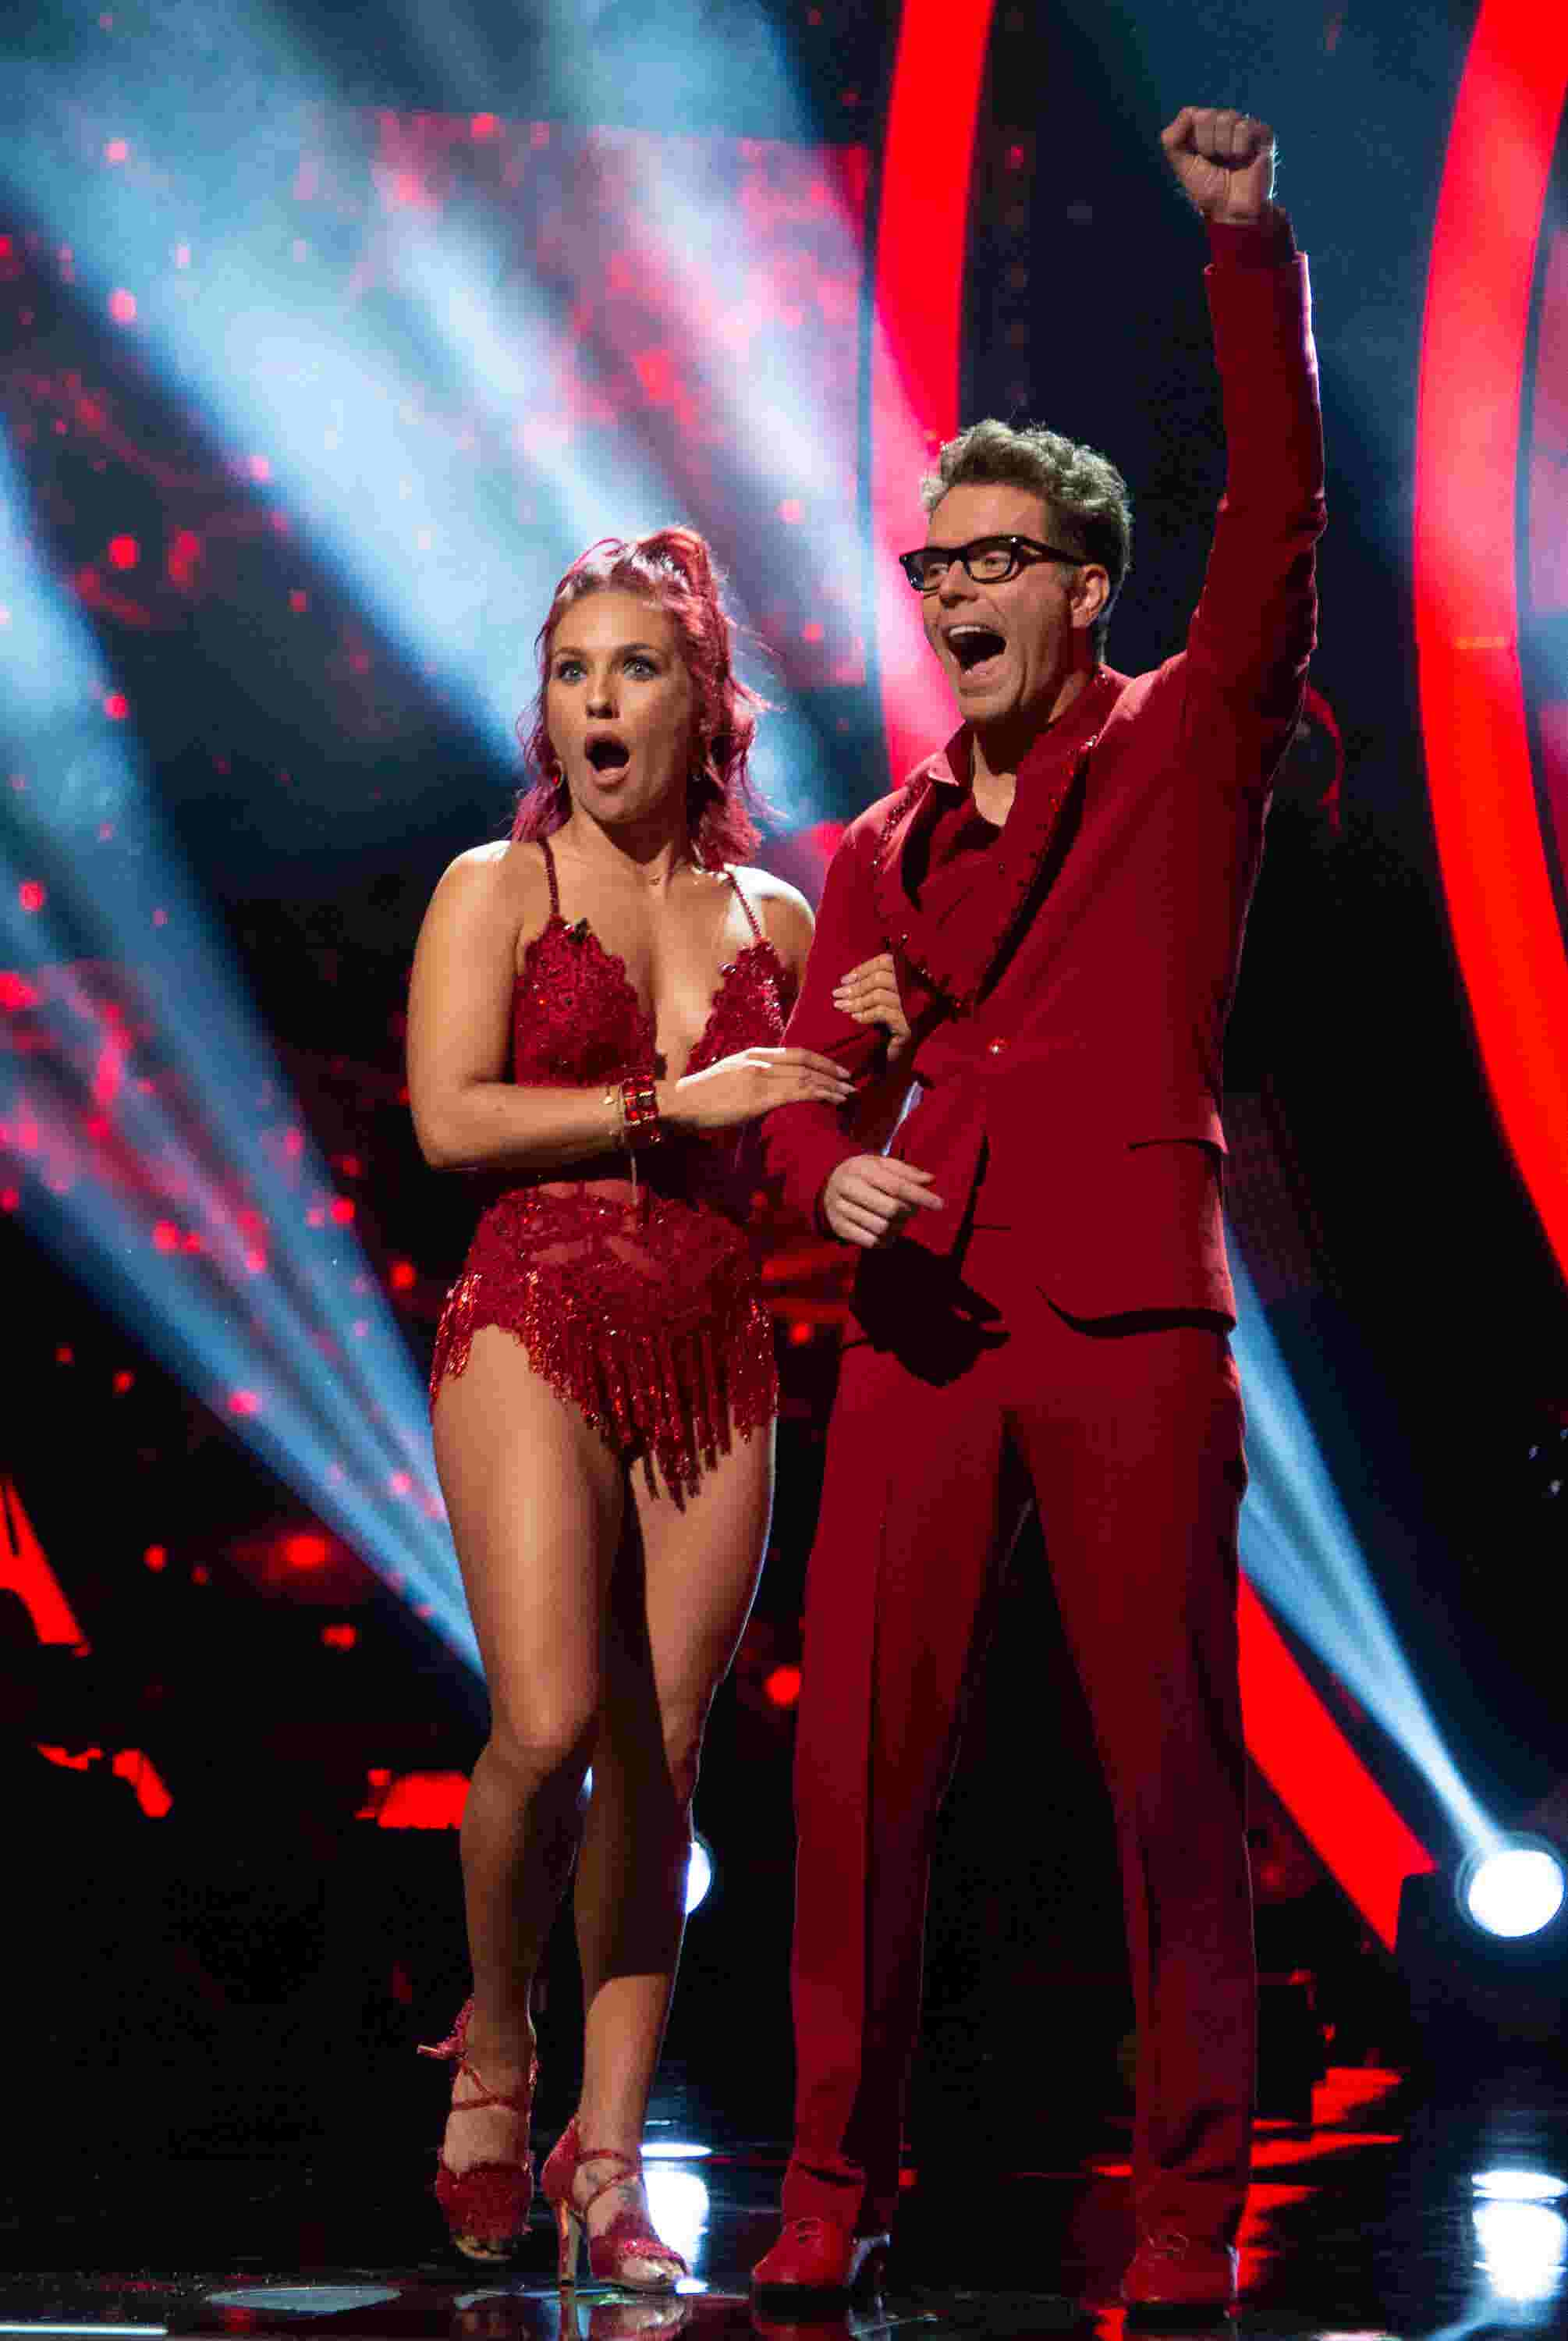 Dancing with the Stars: Did Bobby Bones get flossed?